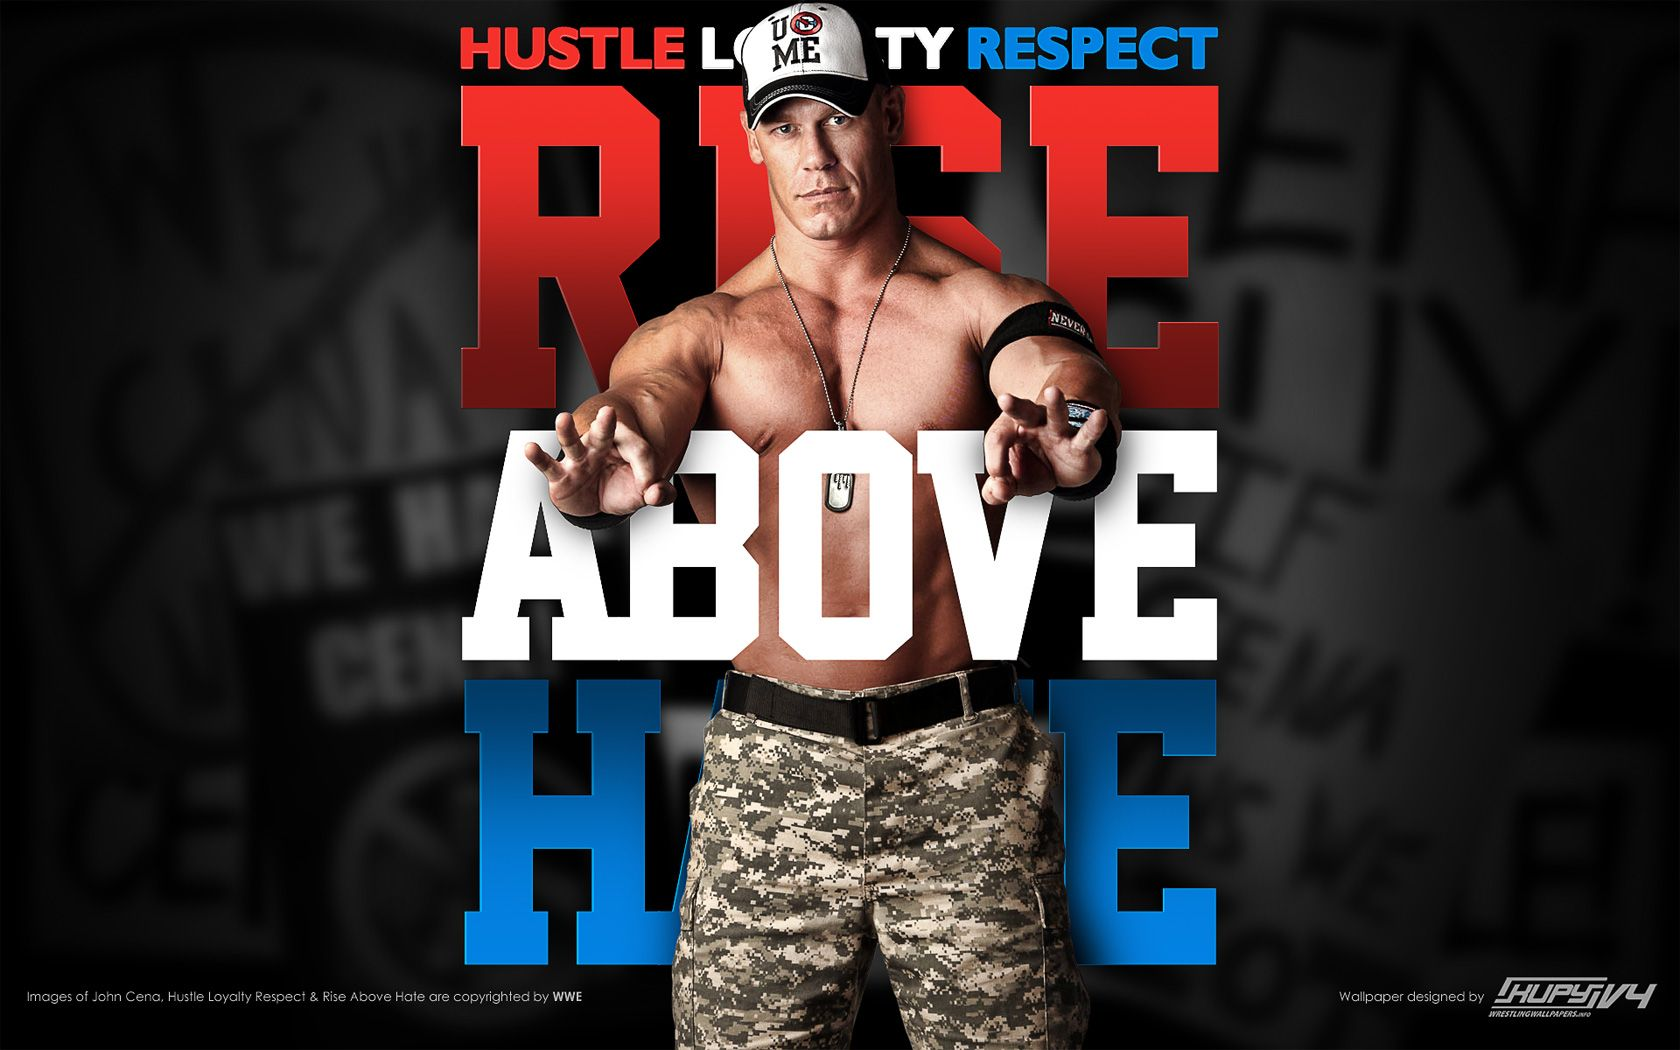 John Cena Rise Above Hate Hustle Loyalty Respect Never Give Up